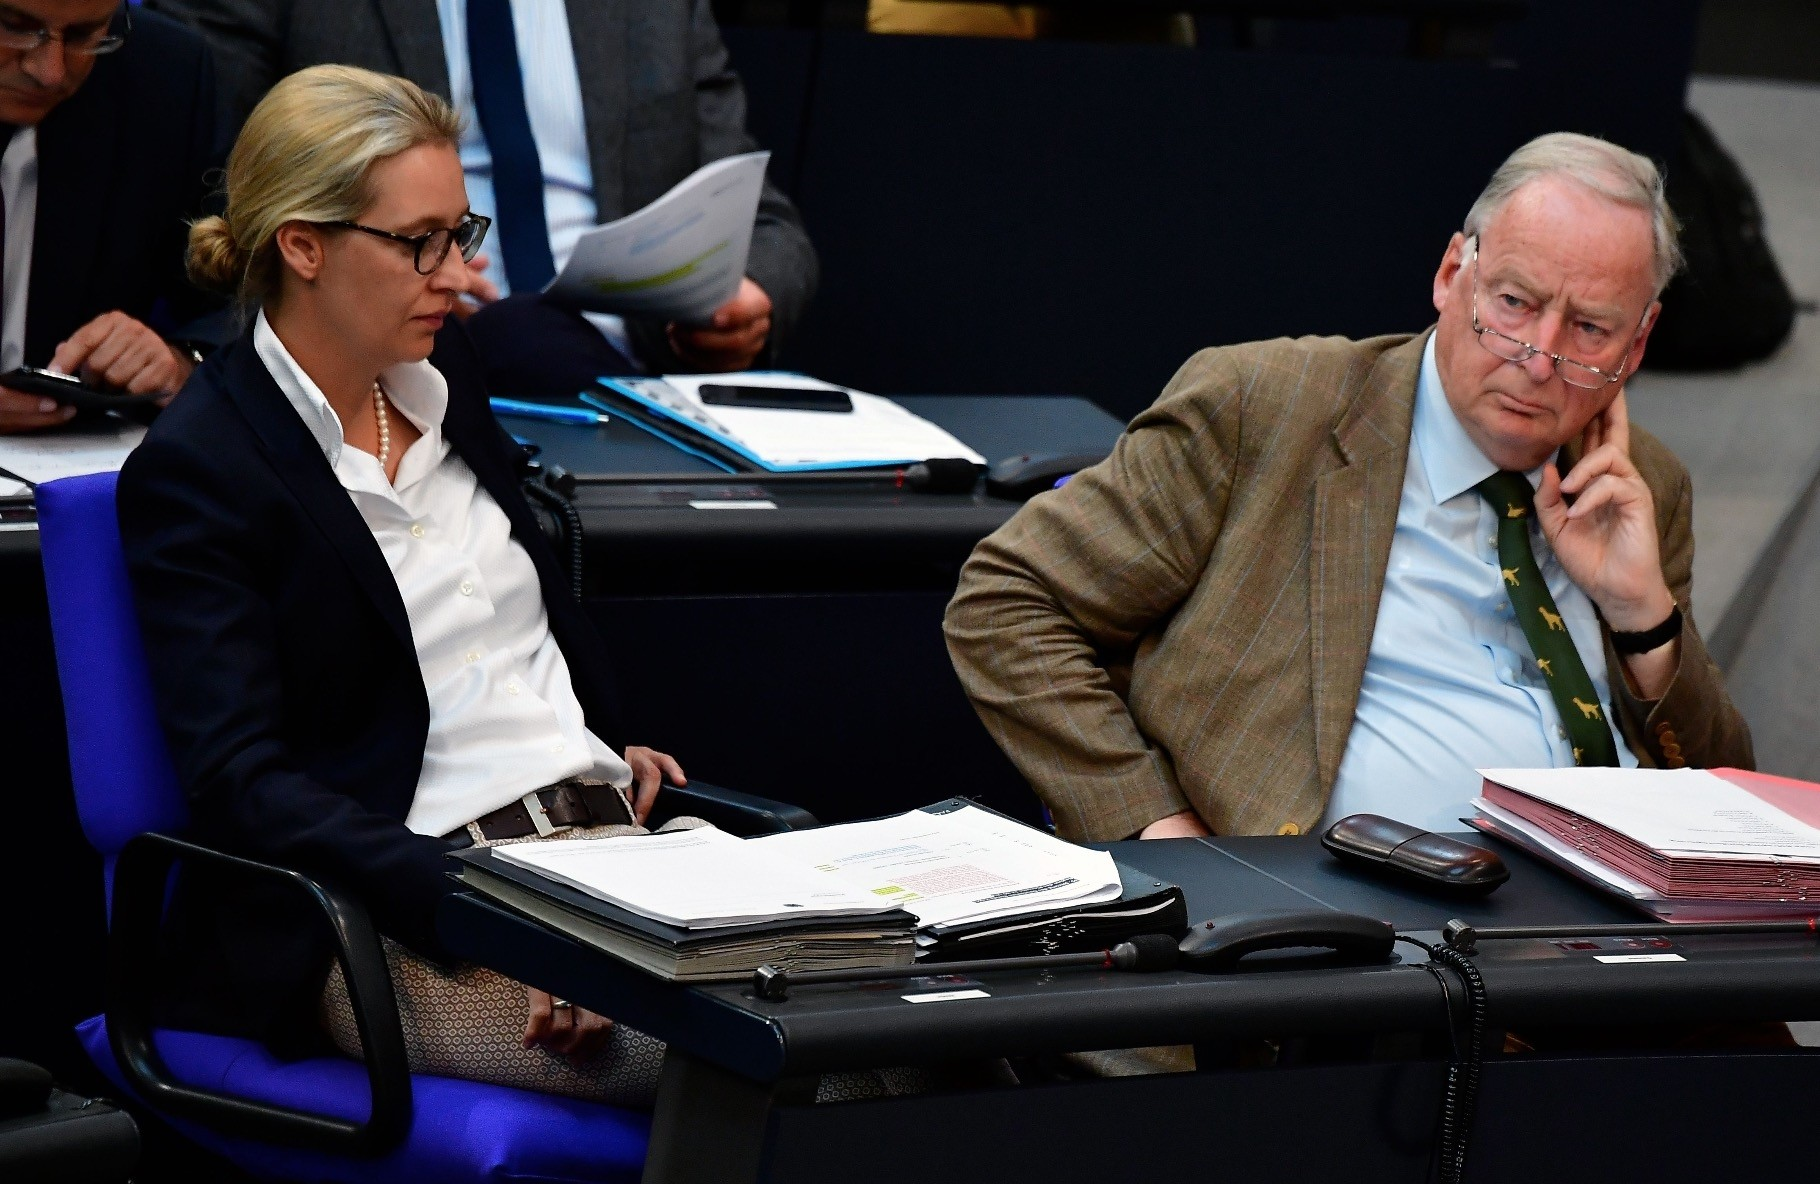 Alice Weidel (L) and Alexander Gauland, co-leaders of the parliamentary group of the AfD in the Bundestag, June 6.